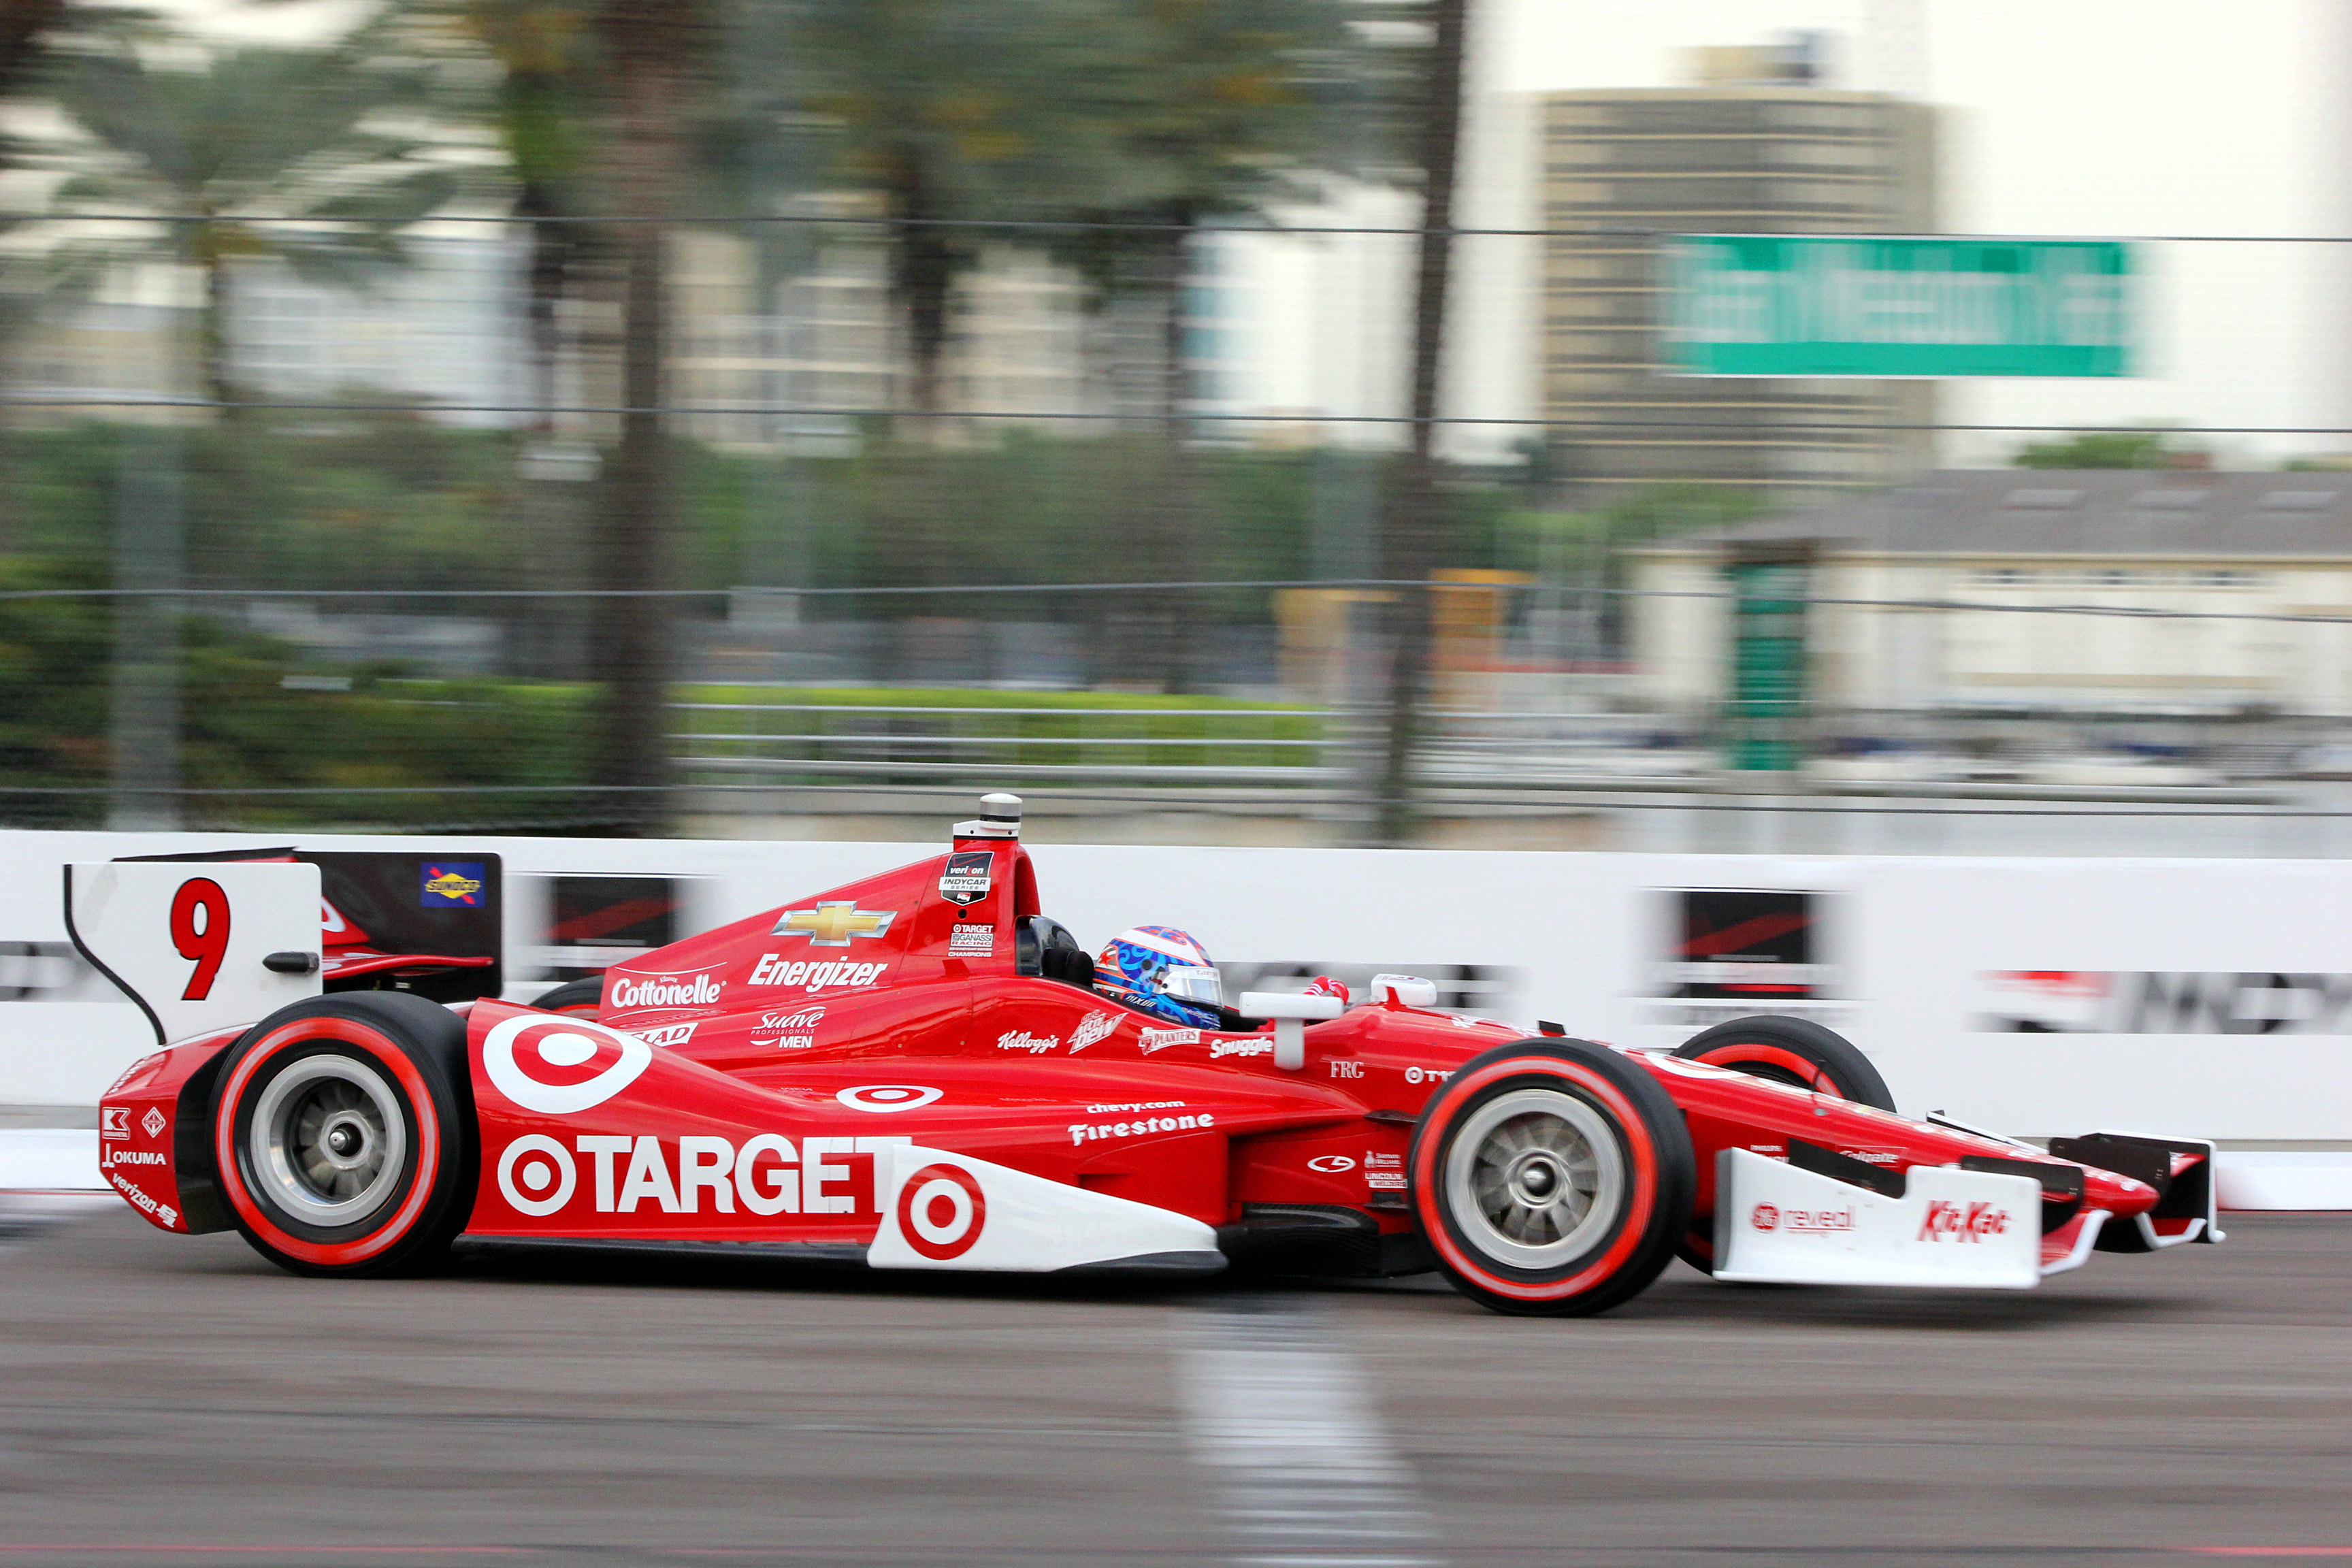 Three-time IndyCar champion Scott Dixon in the #9 Target Ganassi car had to be satisfied with fifth. (Chris Jasurek/Epoch Times)